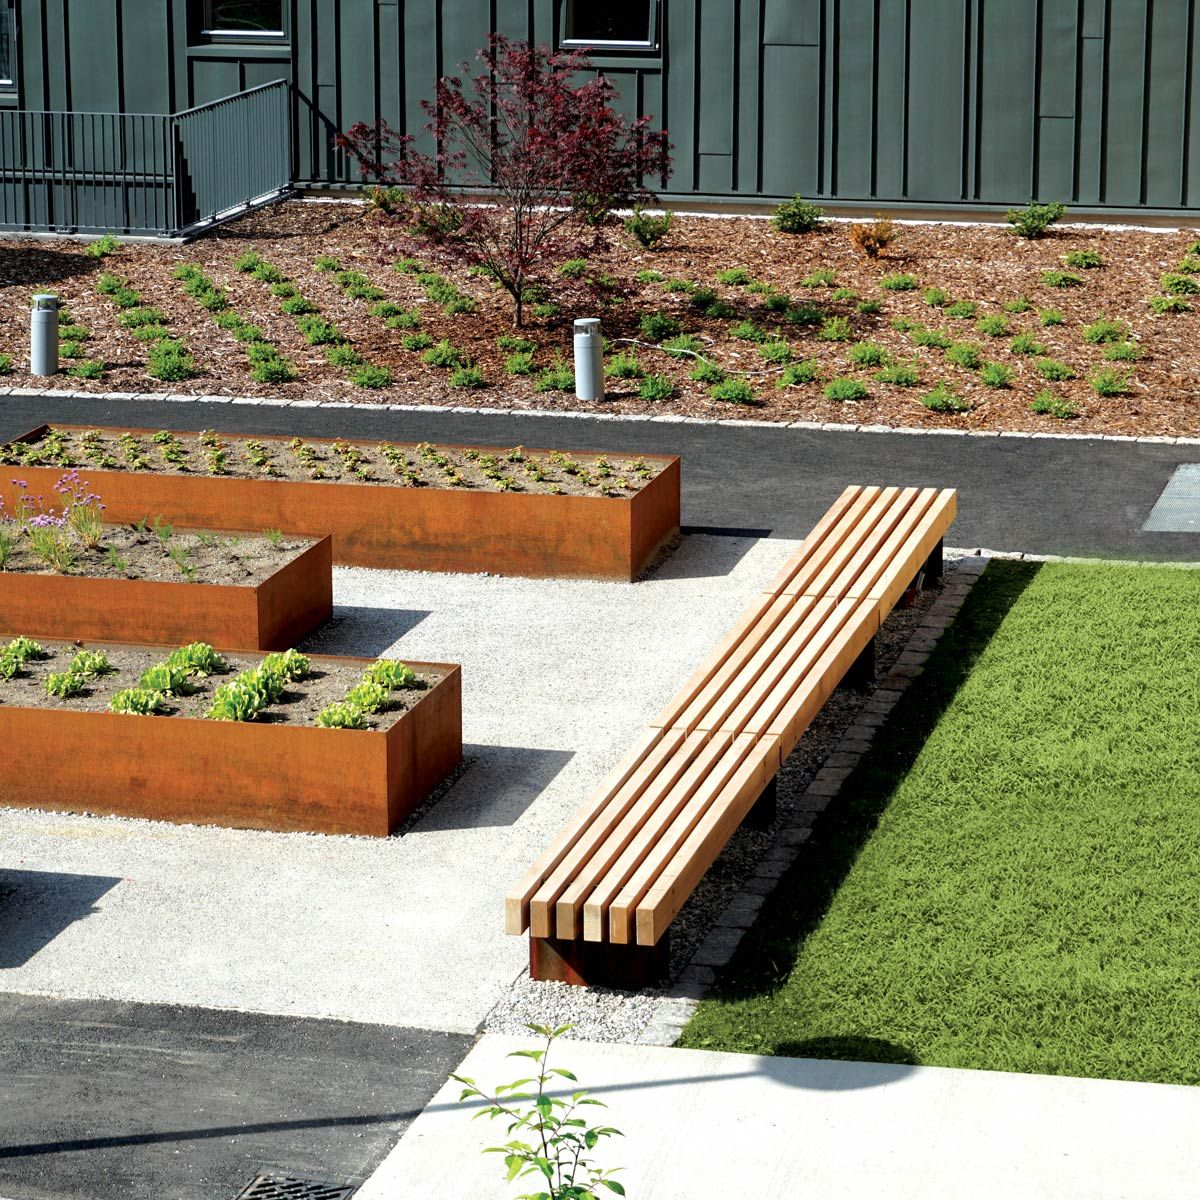 Rough&Ready 6 Benches « Landscape Architecture Works ... on landscape bench drawing, landscape tree designs, landscape arbor designs, landscape bench dimensions, landscape bridge designs, landscape bed designs, landscape wall designs, landscape bench details, landscape garden designs, landscape fence designs, landscape bench graphics, landscape art designs, landscape park designs,